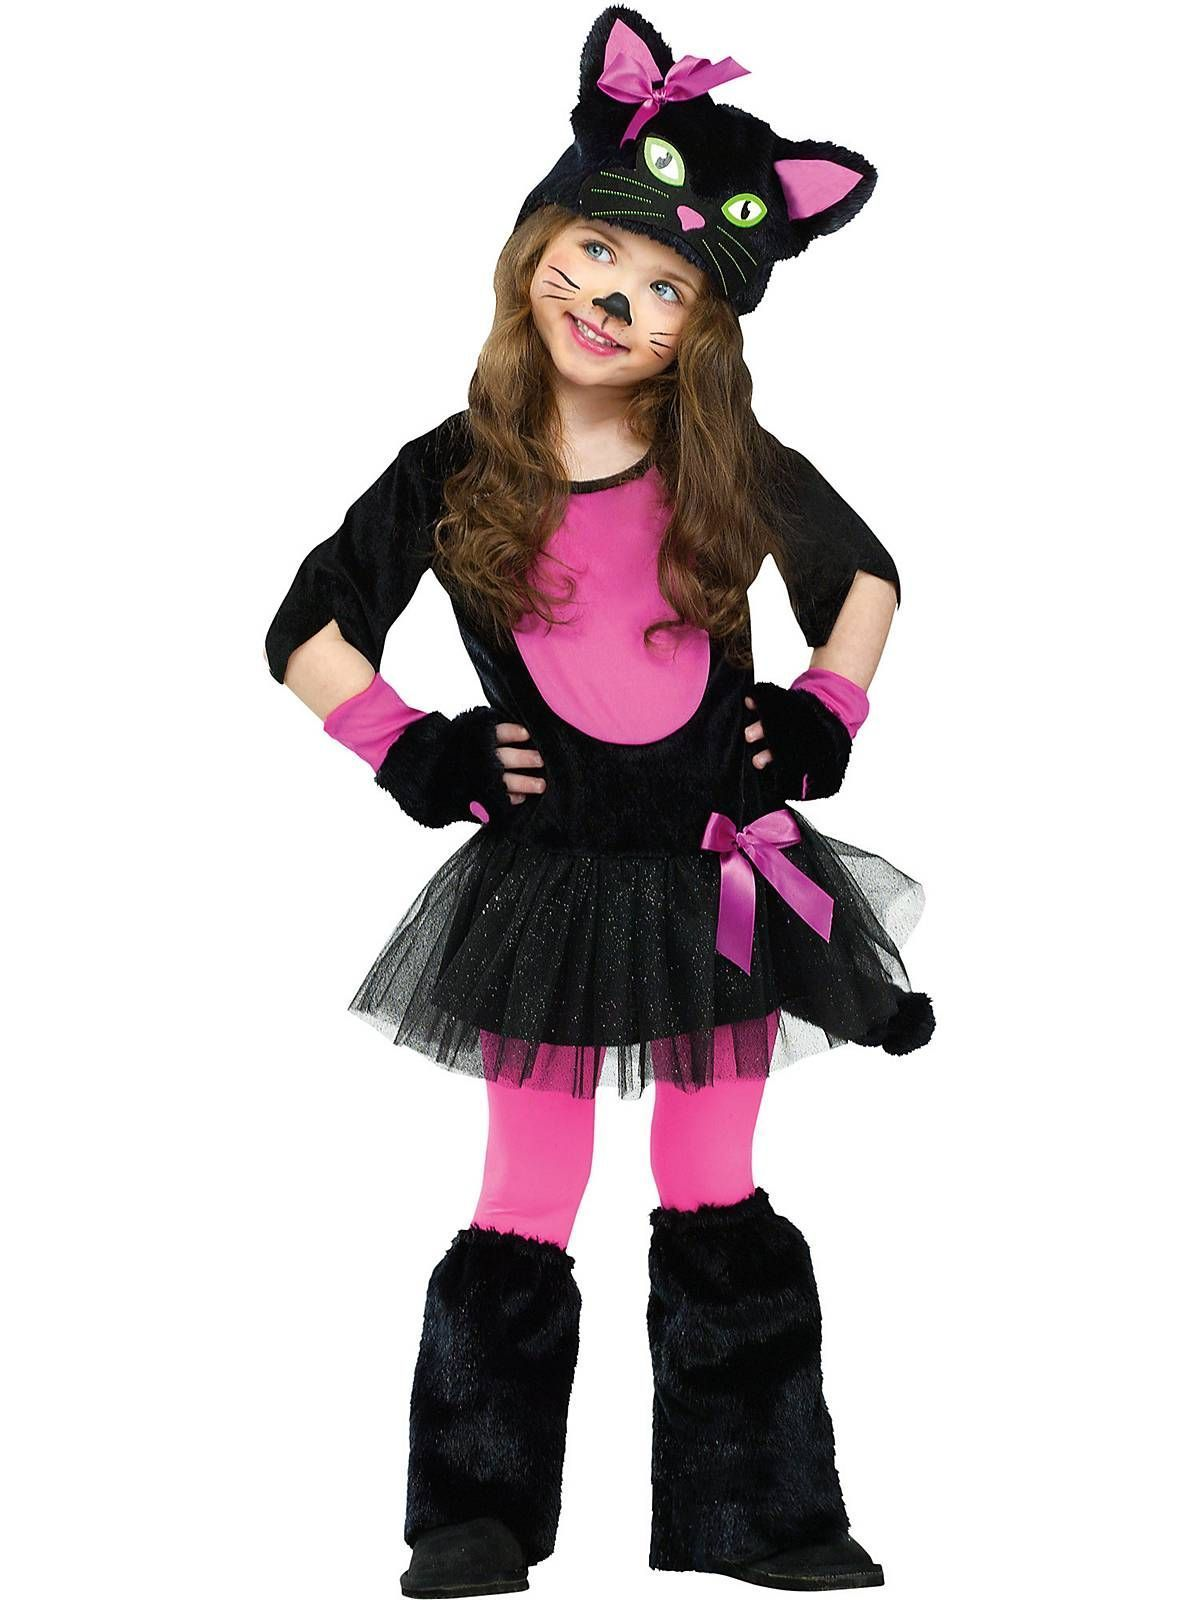 Kitty Cat Halloween Costume Baby Your Little Kitten Lover Can Be The Life Of The Party T Toddler Costumes Girl Halloween Costumes For Girls Kids Costumes Girls